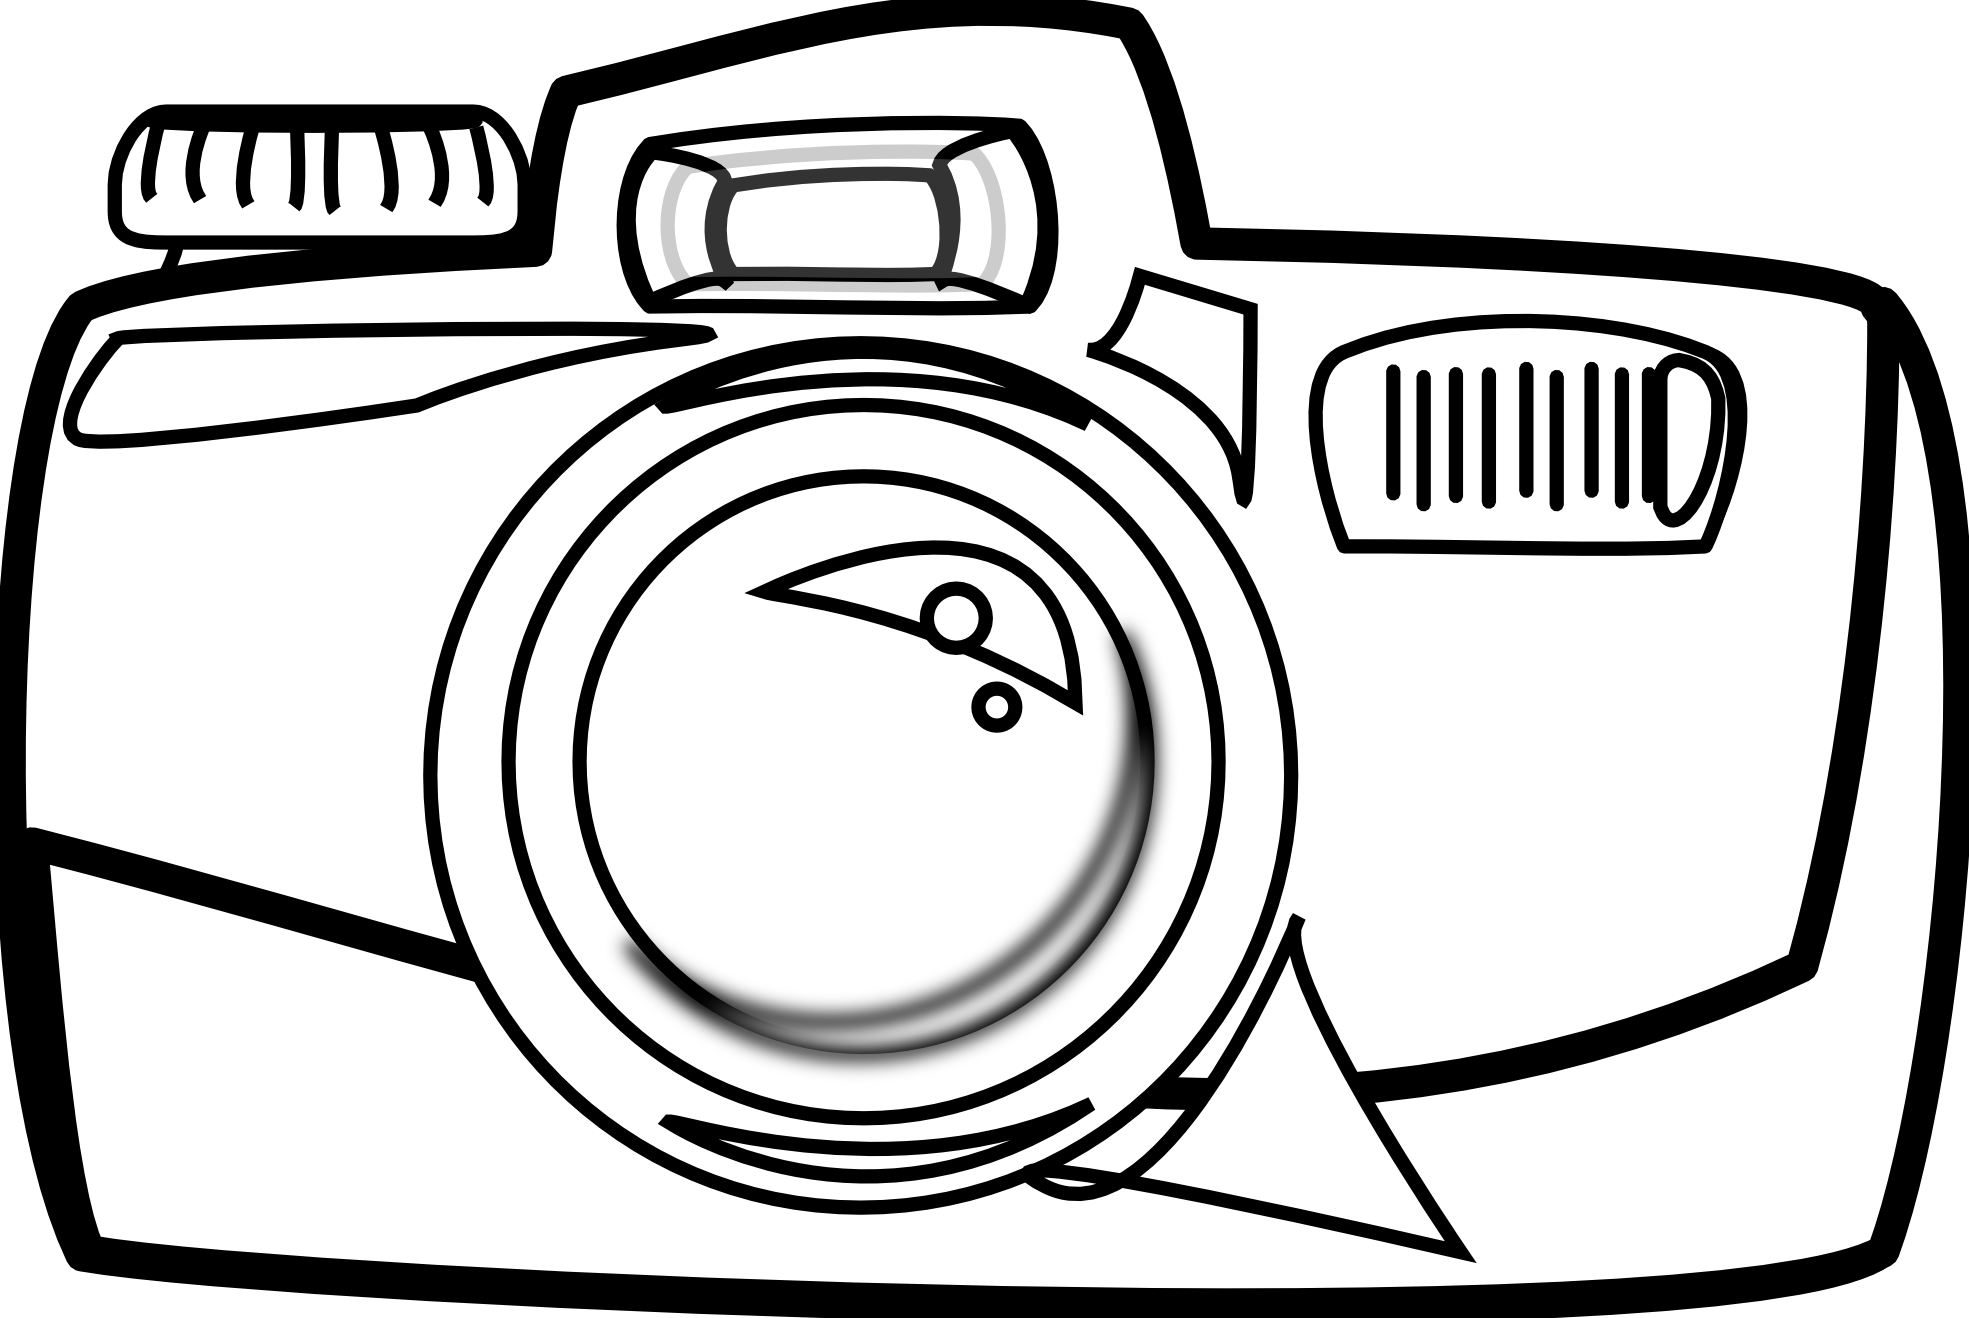 Camera black and white clipart png black and white download Camera Clipart Black And White Png Cam Clipart - Clip Art Library png black and white download